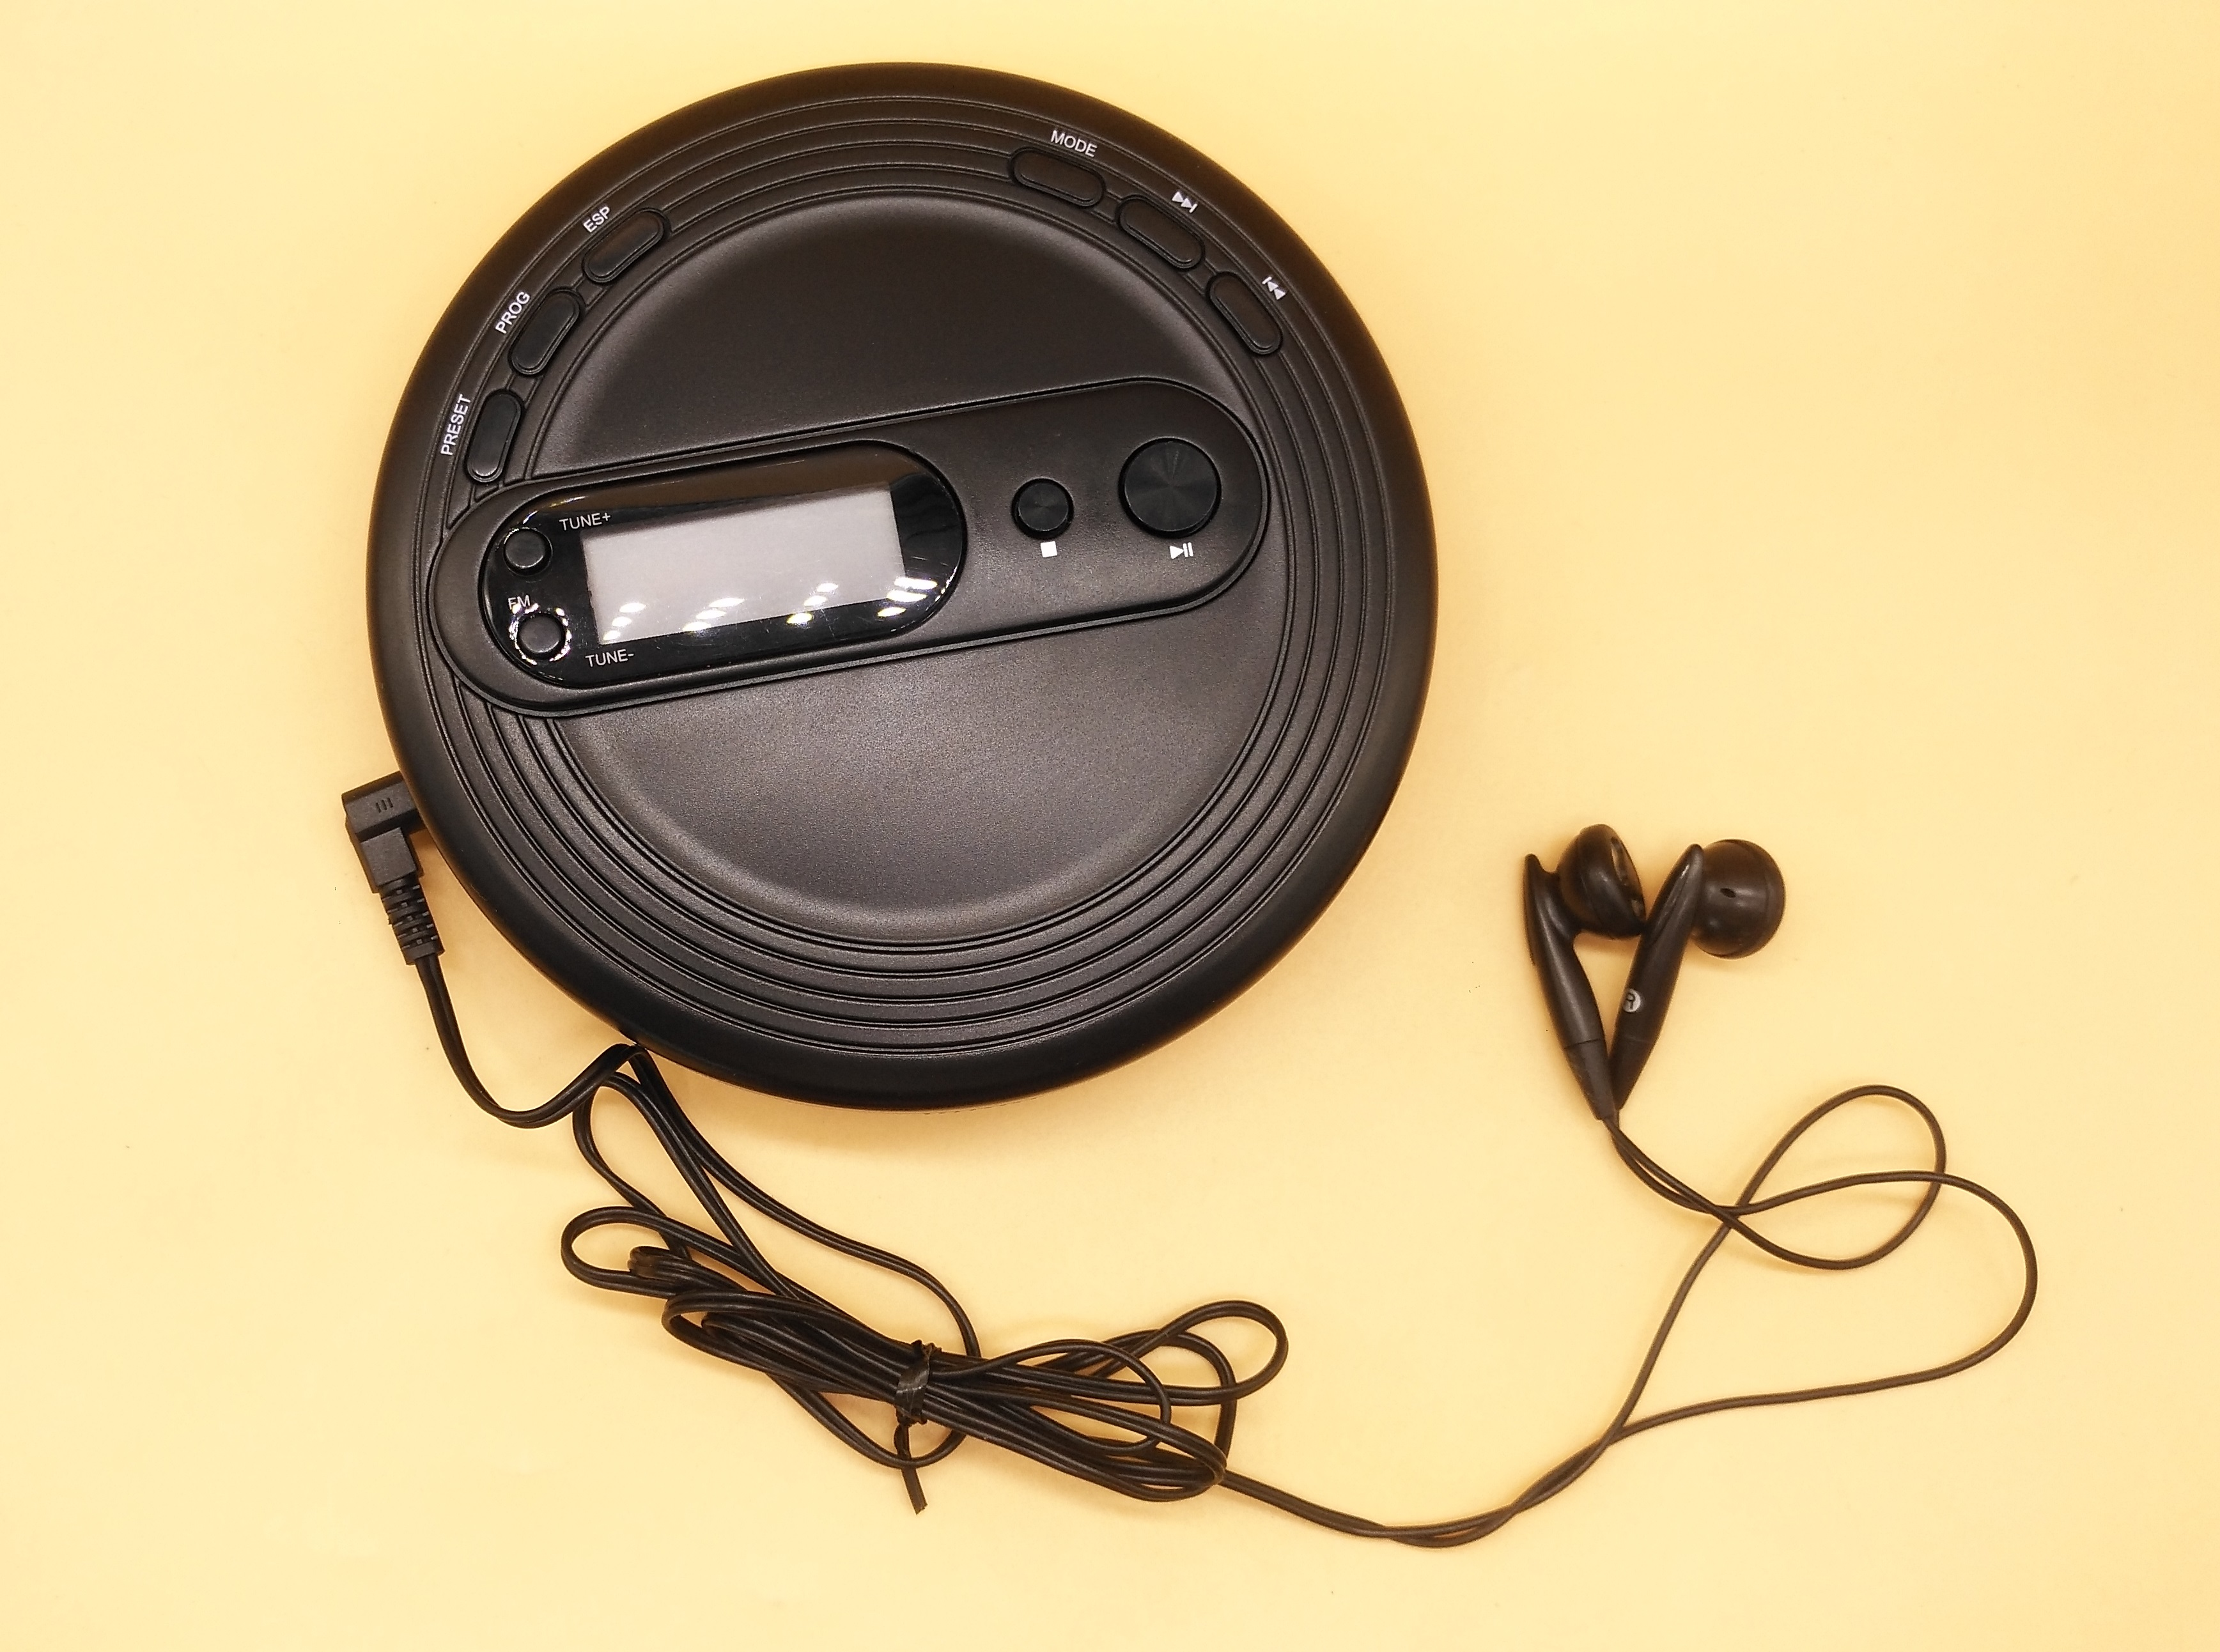 Brand New Portable CD Player For Audio CD/CD-R with FM Radio Shock Protection/Skip Free/ESP Bass Boost System Earphones